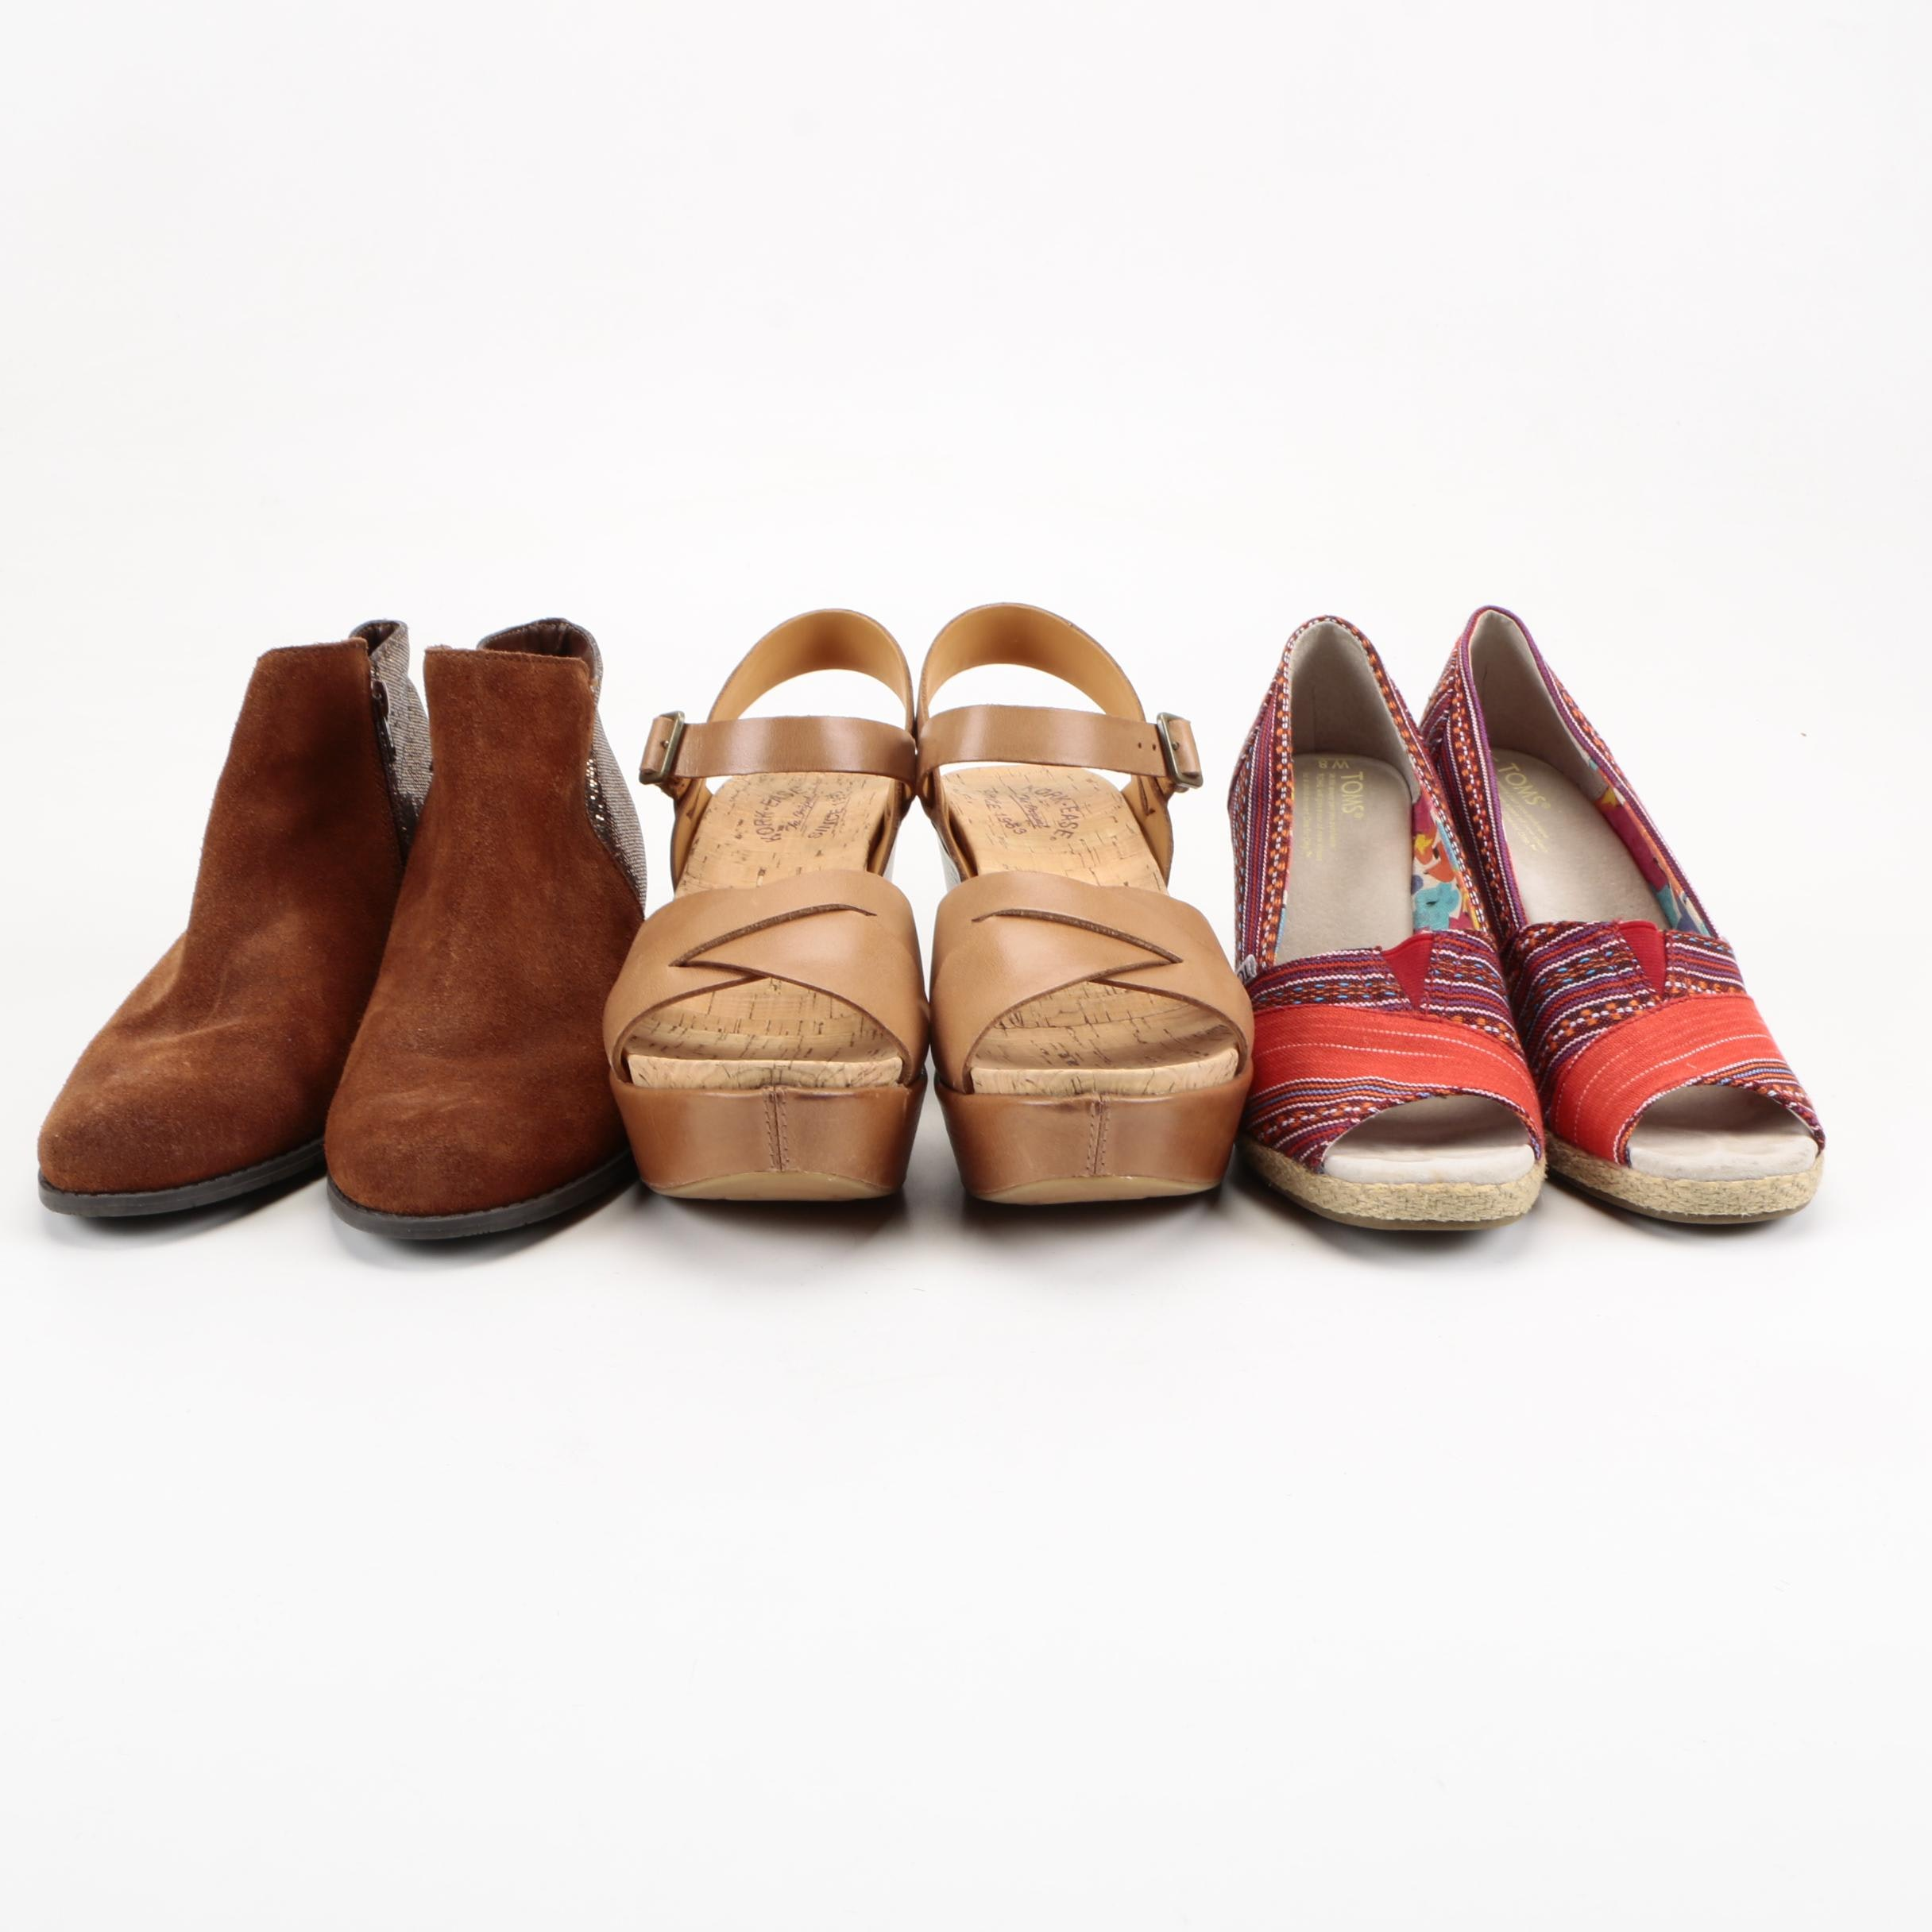 Women's Shoes Including Toms and Kork-Ease